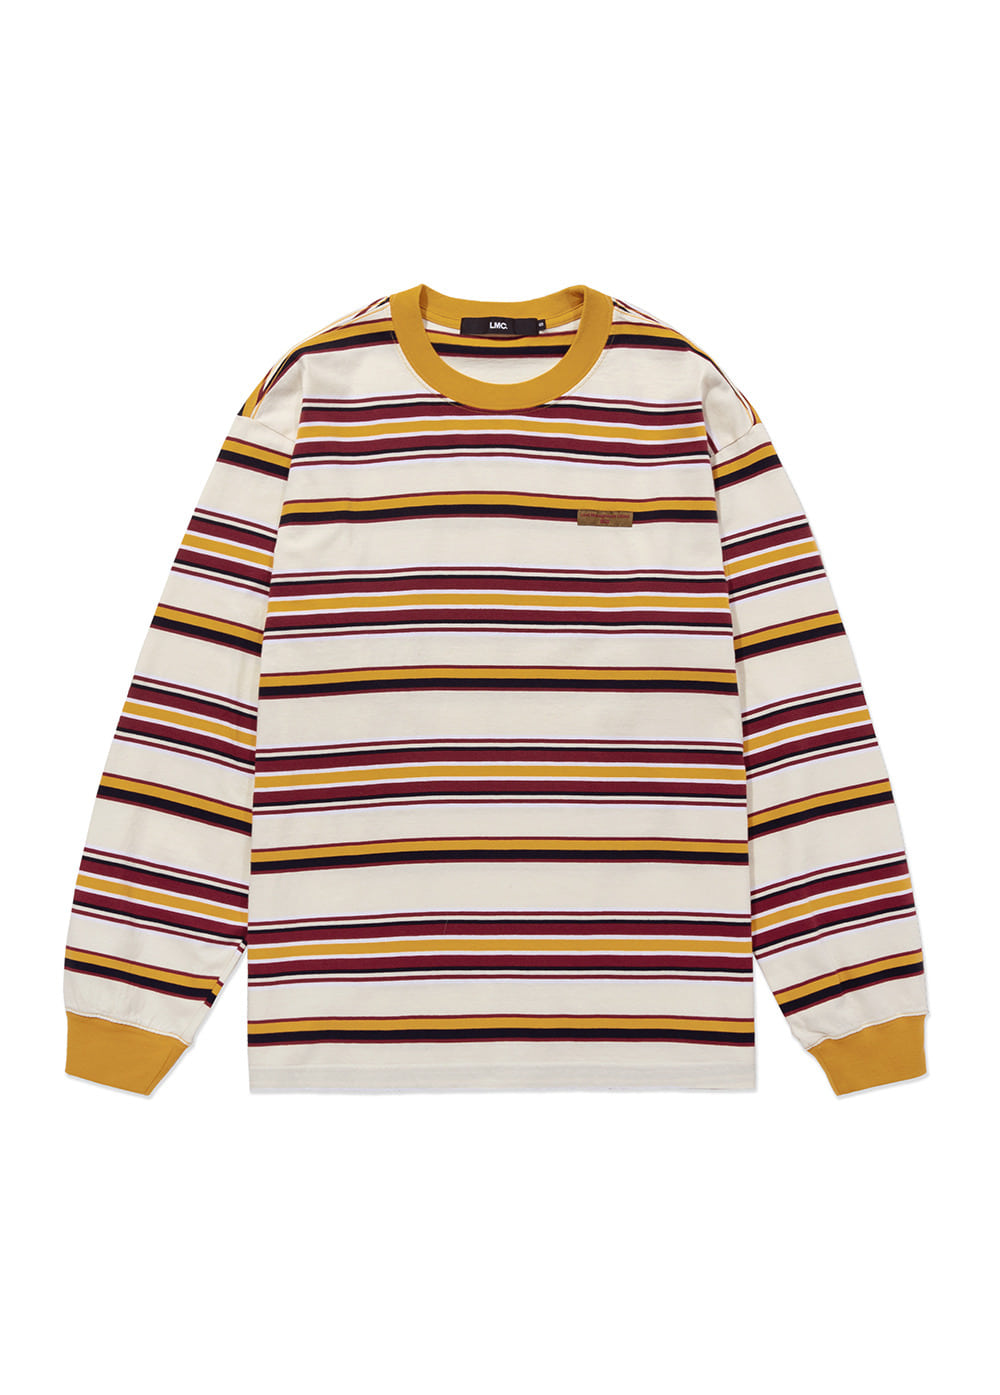 LMC MULTI STRIPE LONG SLV TEE cream